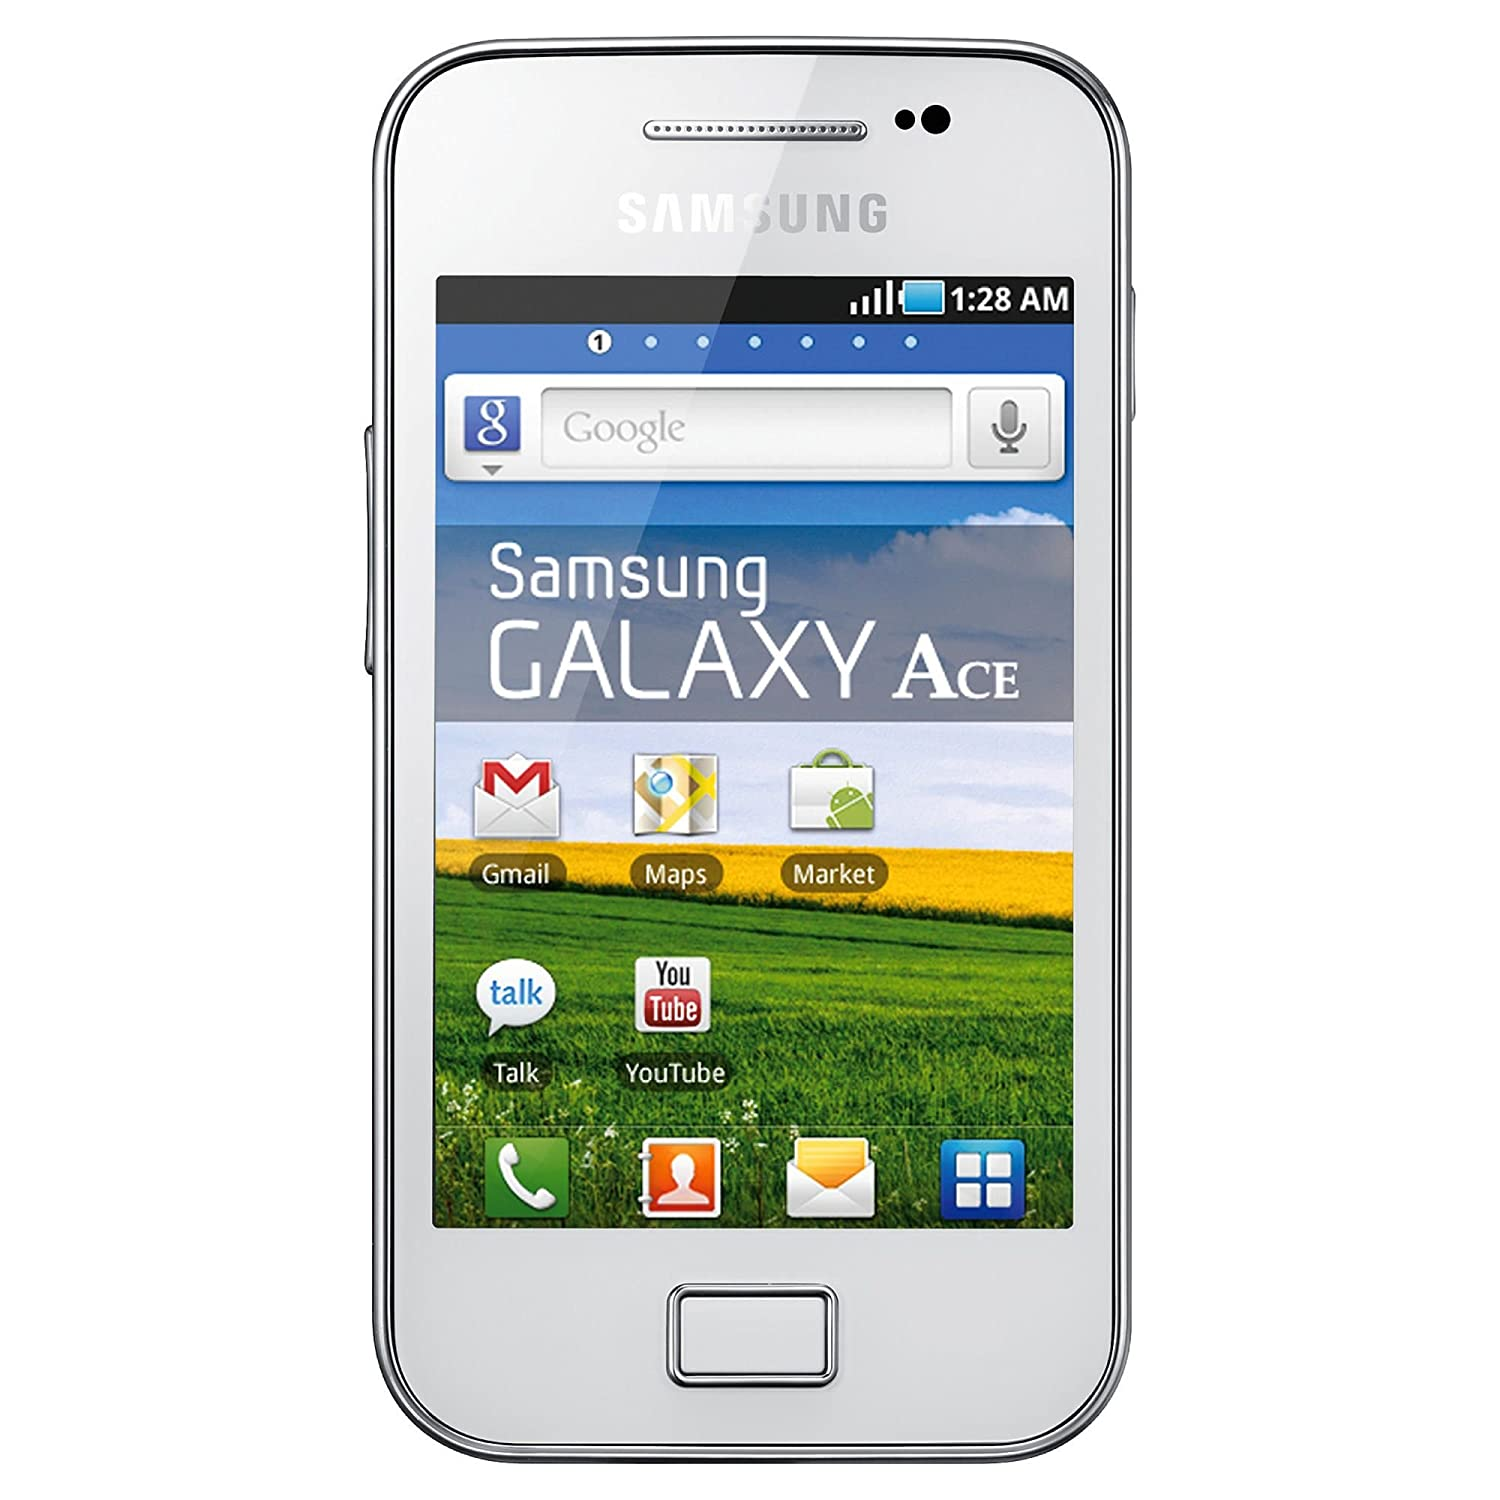 Samsung Galaxy Ace S5831 - Factory Unlocked GSM 3G 900/2100 Smartphone White